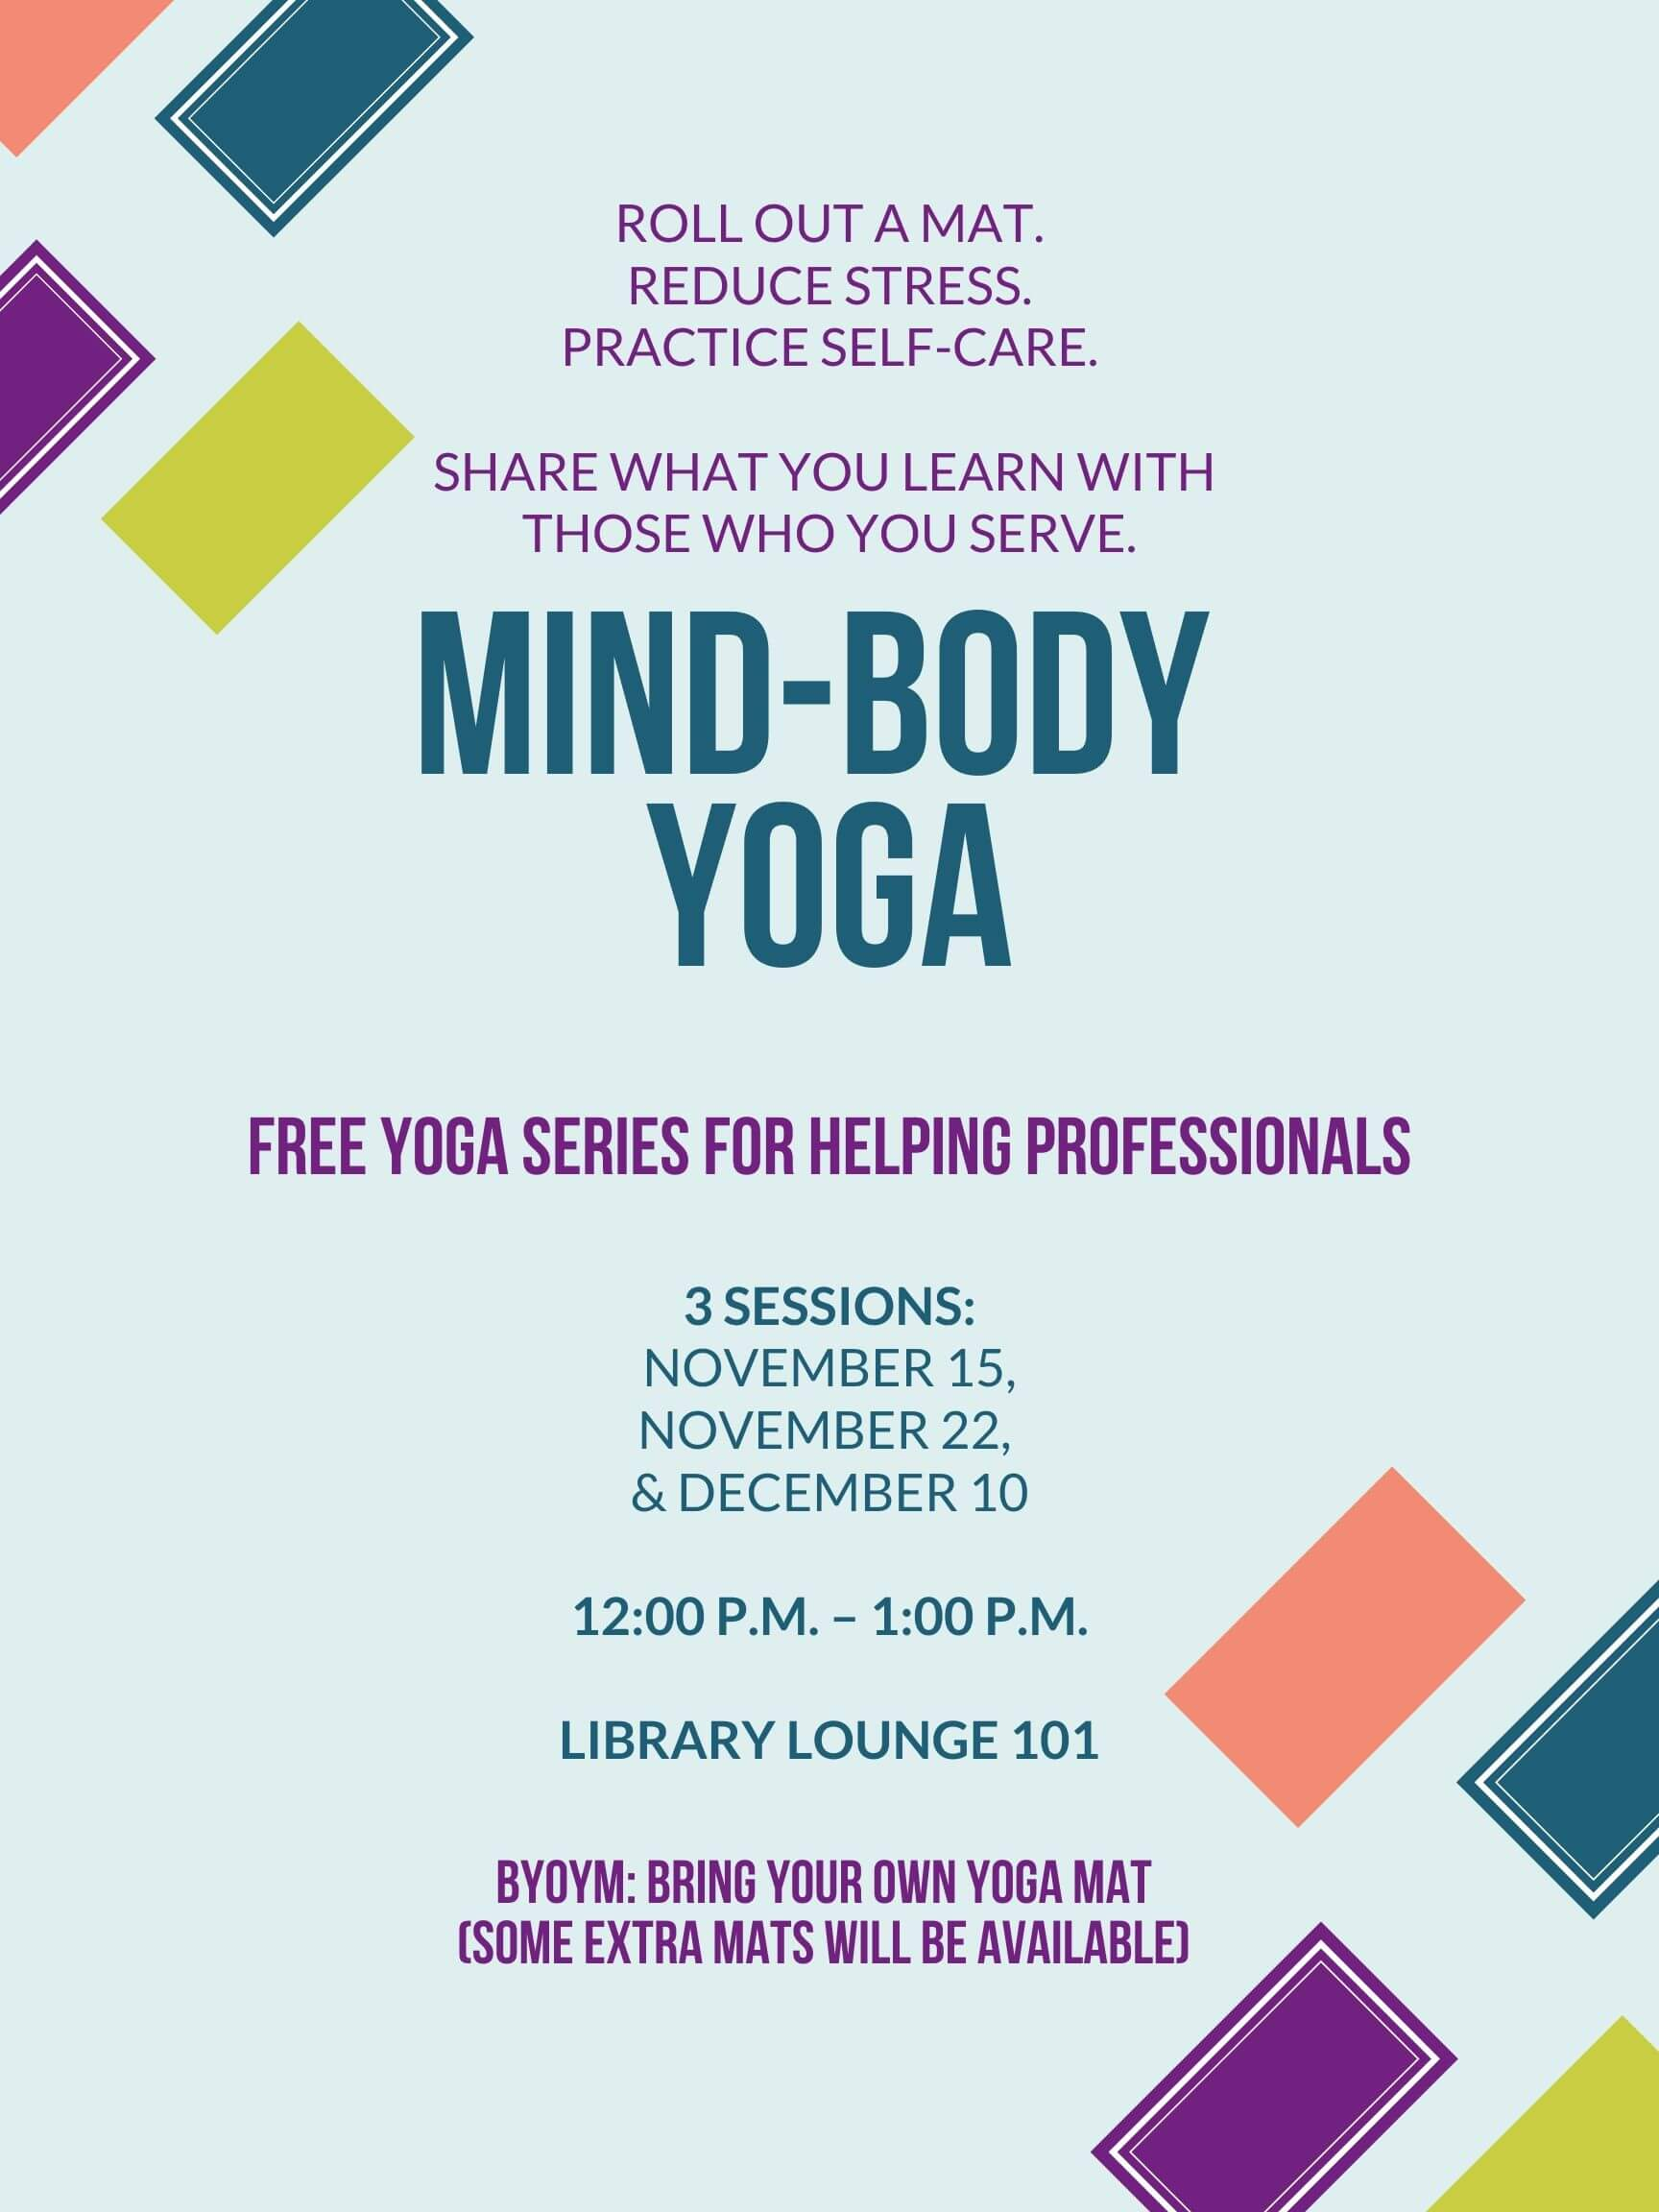 Image of flyer for upcoming Mind-Body Yoga sessions